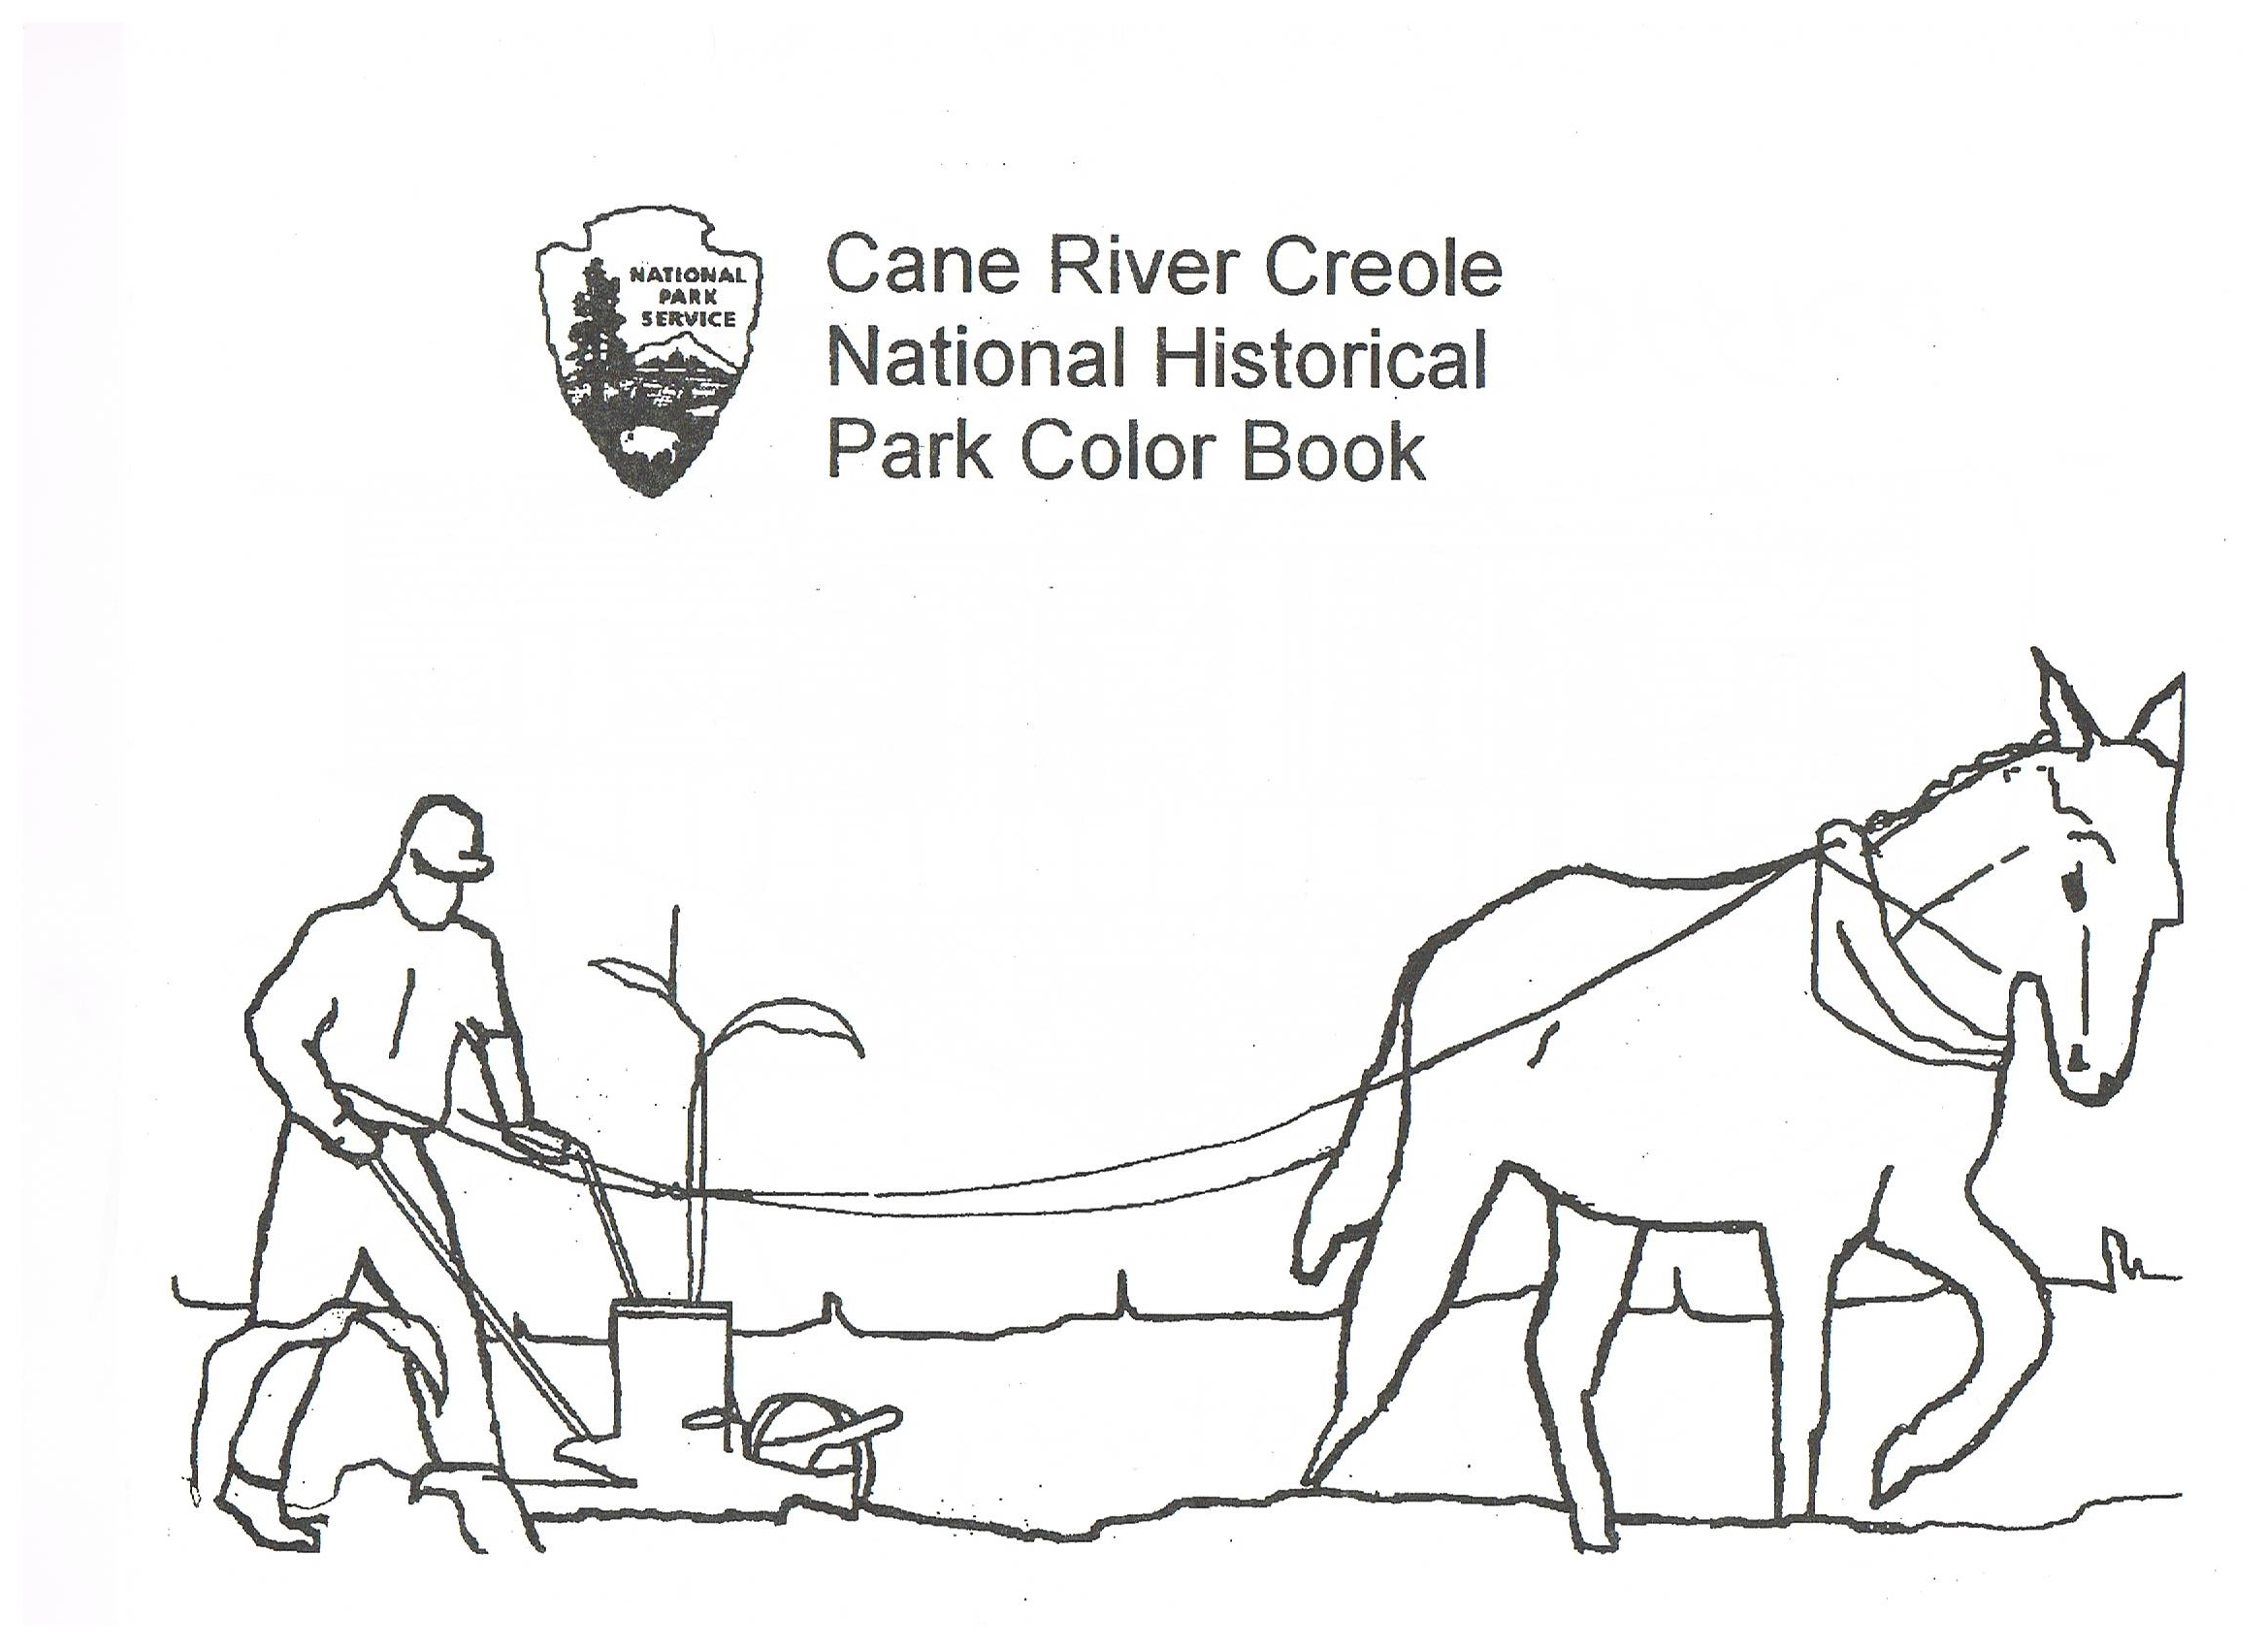 Coloring Pages Cane River Creole National Historical Park U S National Park Service